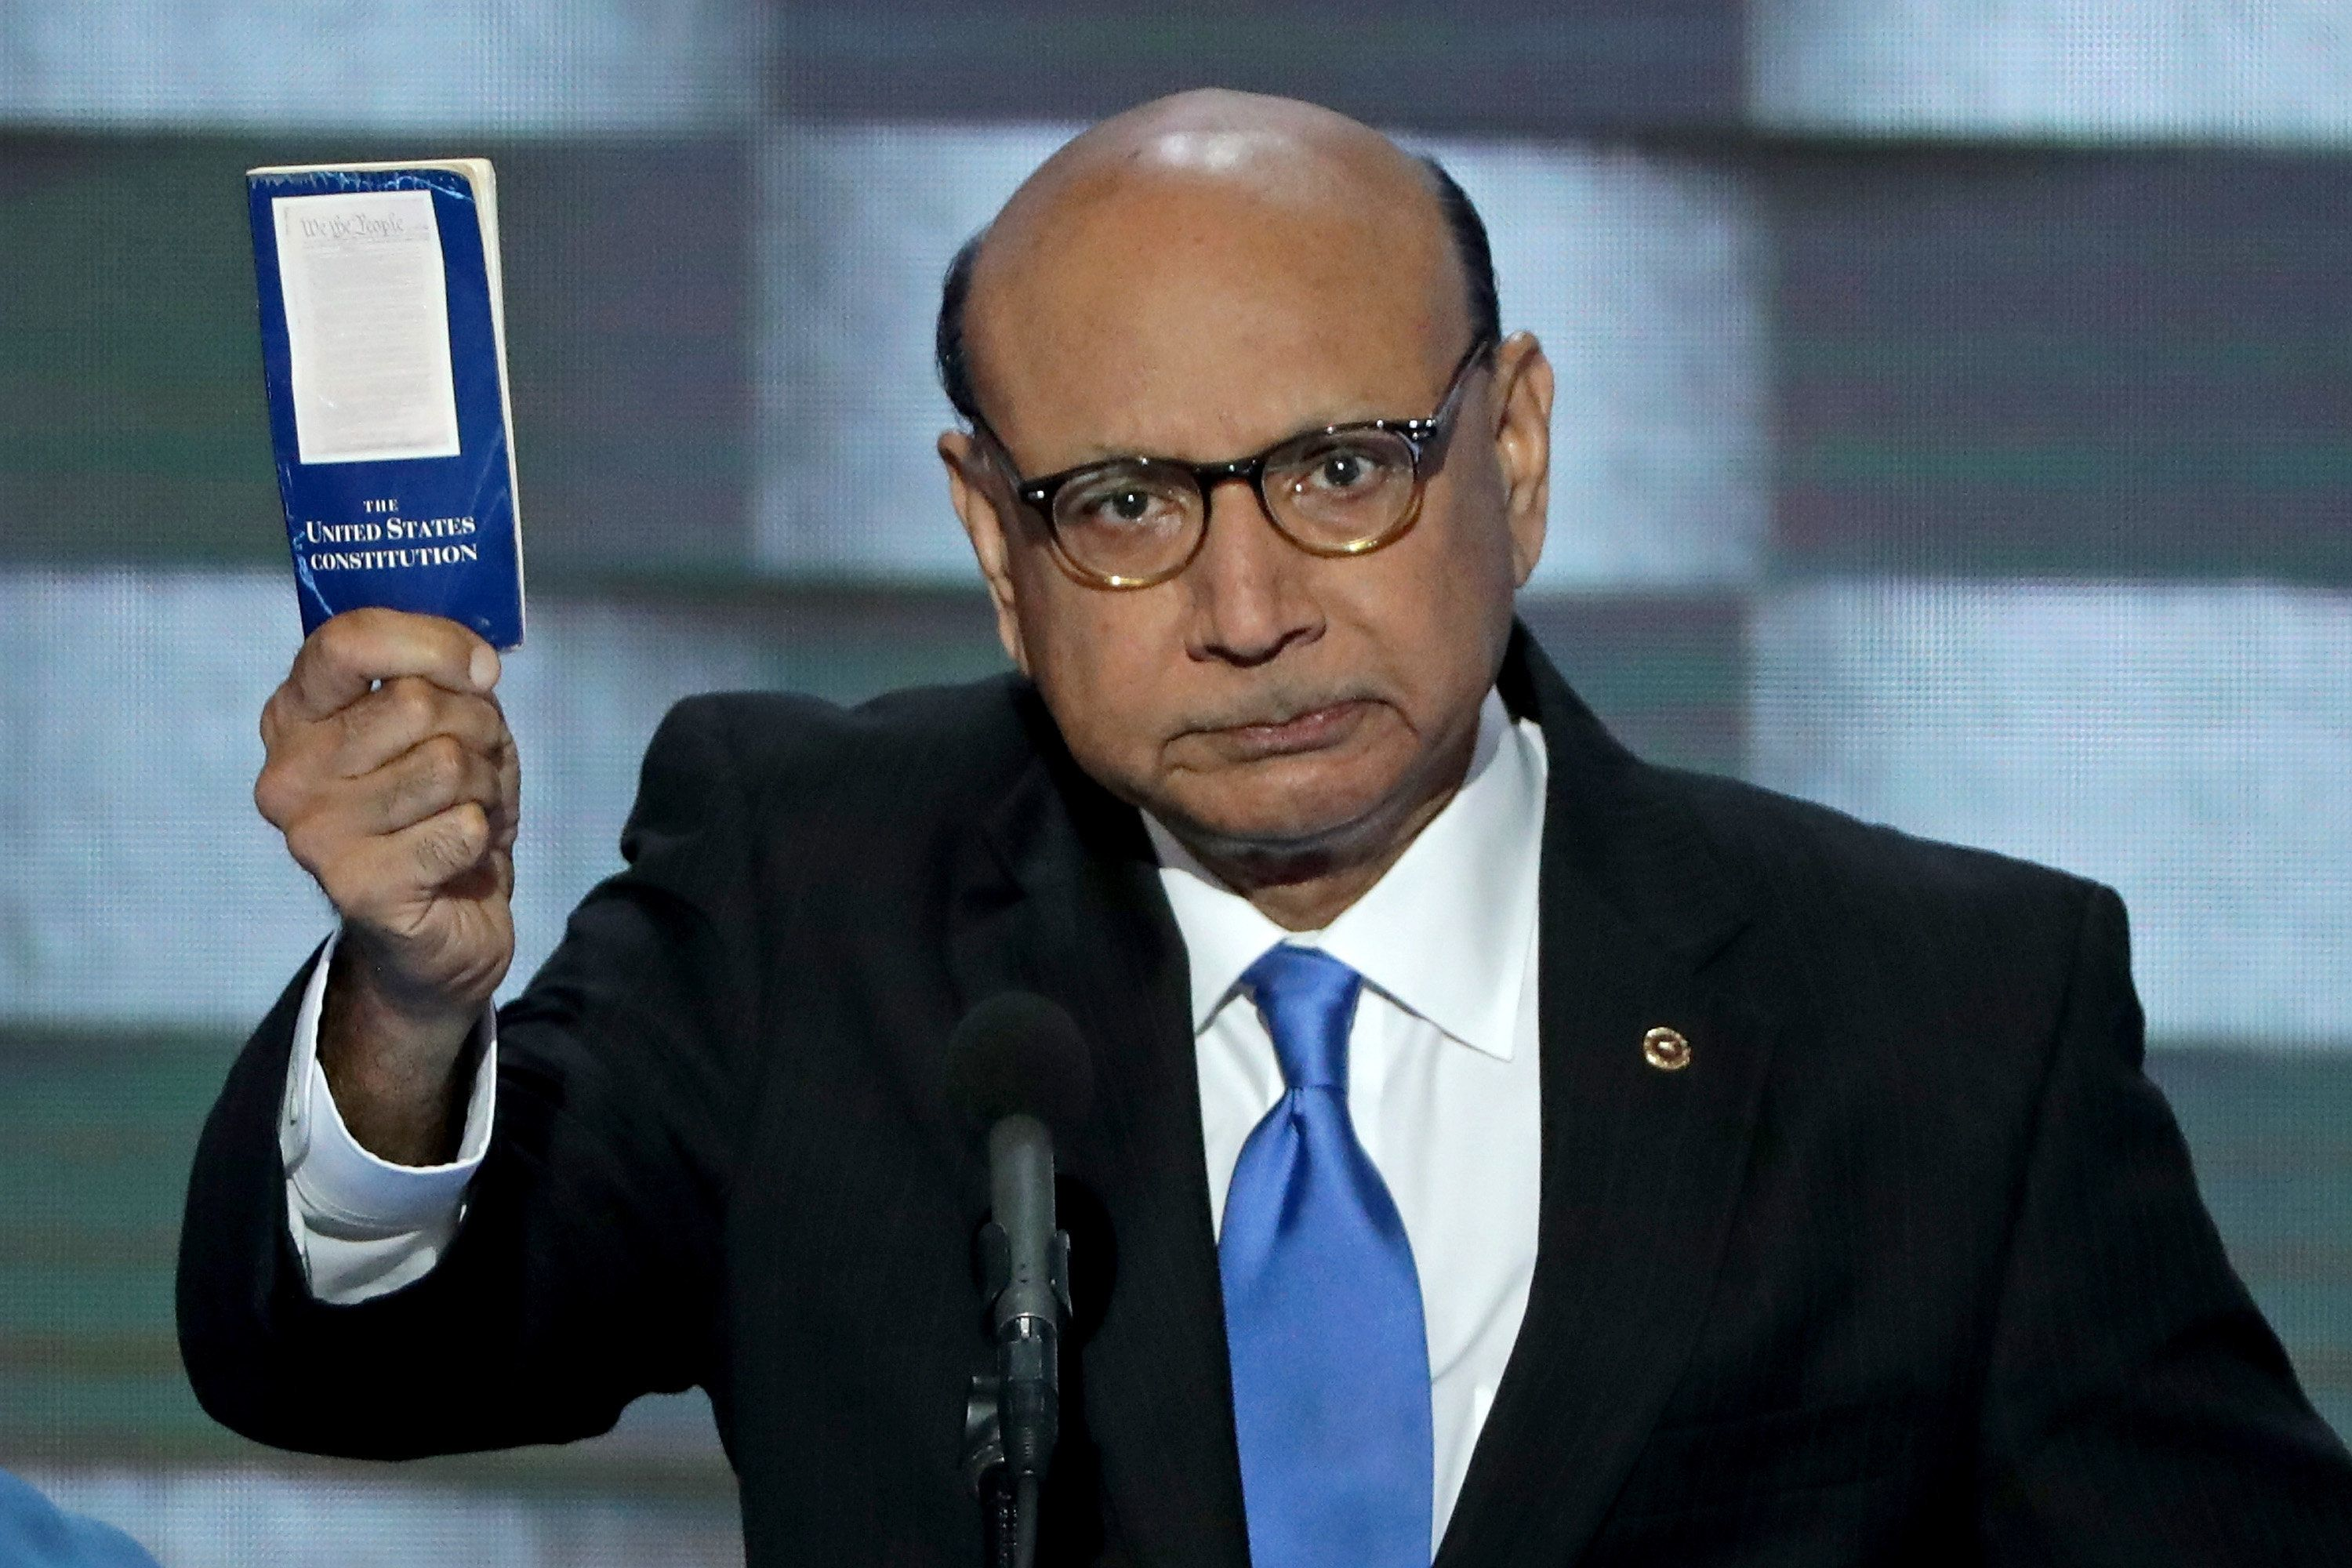 PHILADELPHIA, PA - JULY 28:  Khizr Khan, father of deceased Muslim U.S. Soldier, holds up a booklet of the US Constitution as he delivers remarks on the fourth day of the Democratic National Convention at the Wells Fargo Center, July 28, 2016 in Philadelphia, Pennsylvania. Democratic presidential candidate Hillary Clinton received the number of votes needed to secure the party's nomination. An estimated 50,000 people are expected in Philadelphia, including hundreds of protesters and members of the media. The four-day Democratic National Convention kicked off July 25.  (Photo by Alex Wong/Getty Images)